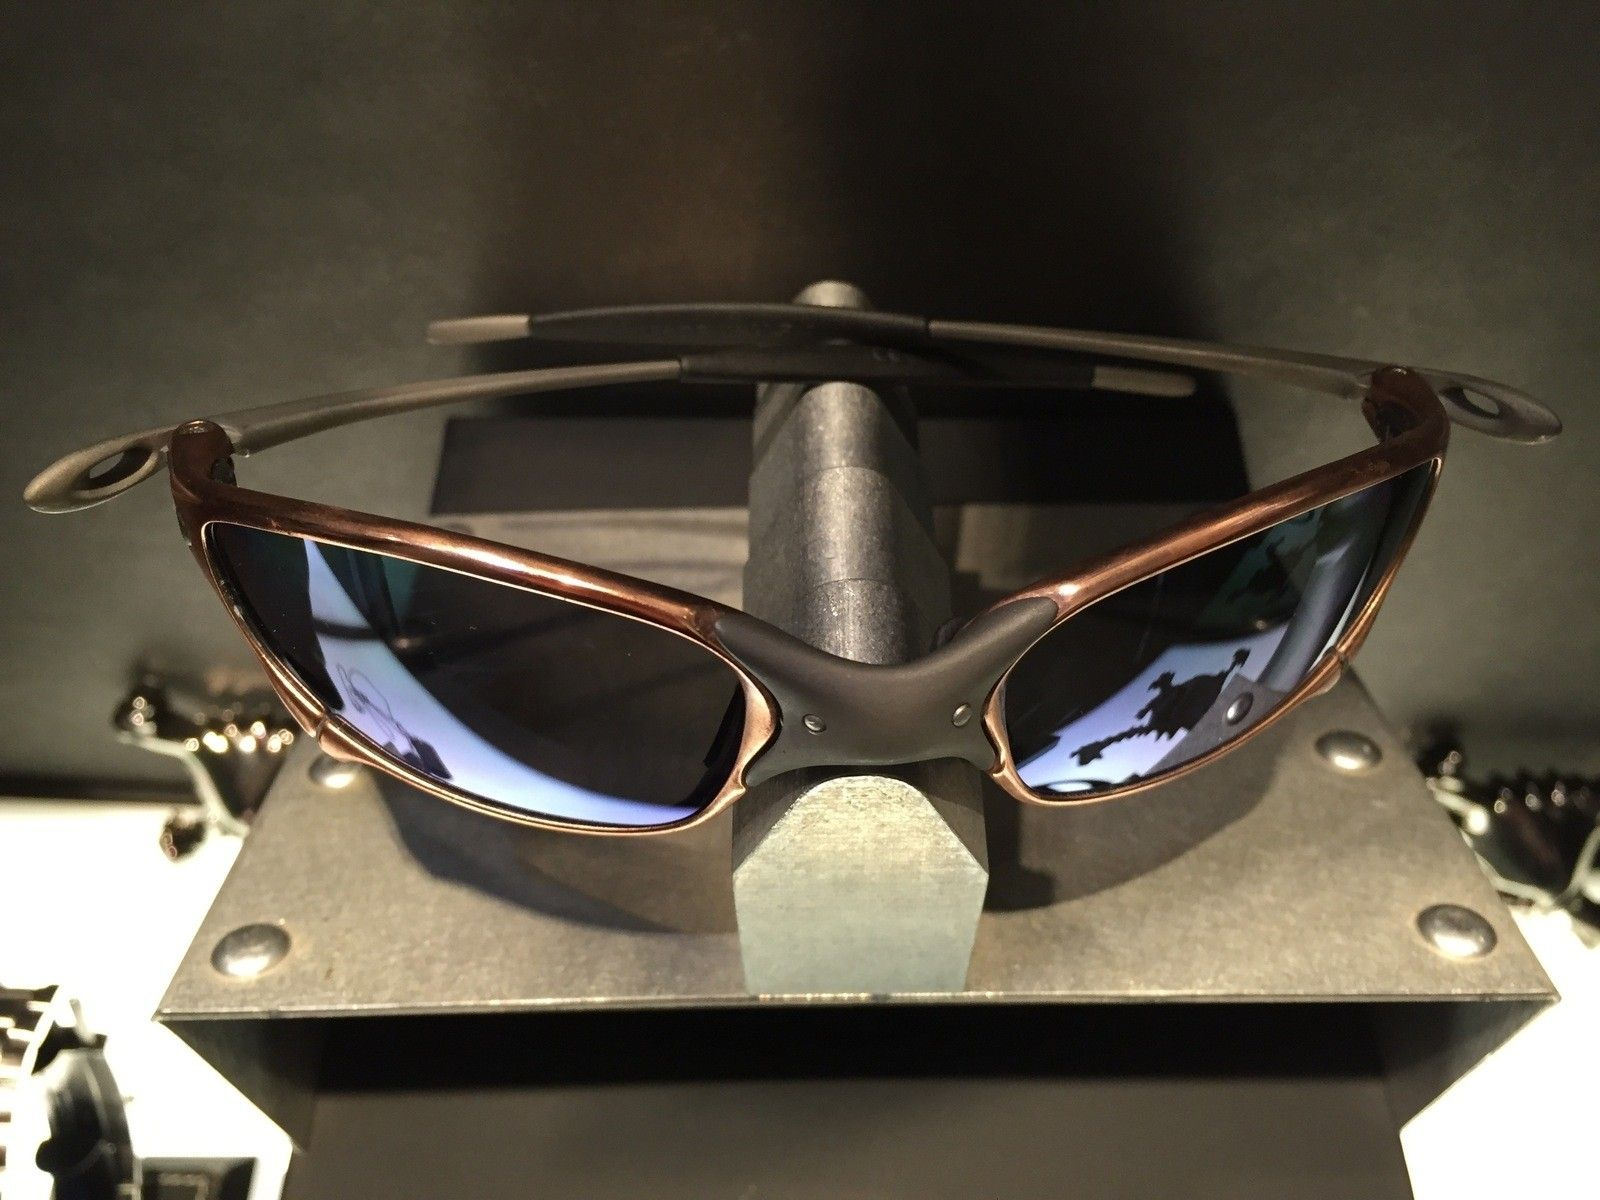 Juliet Custom Copper Plated X-Metal Ti-02 and Reverse Version with Jade and Sapphire Polarized Lens - IMG_2851.jpg